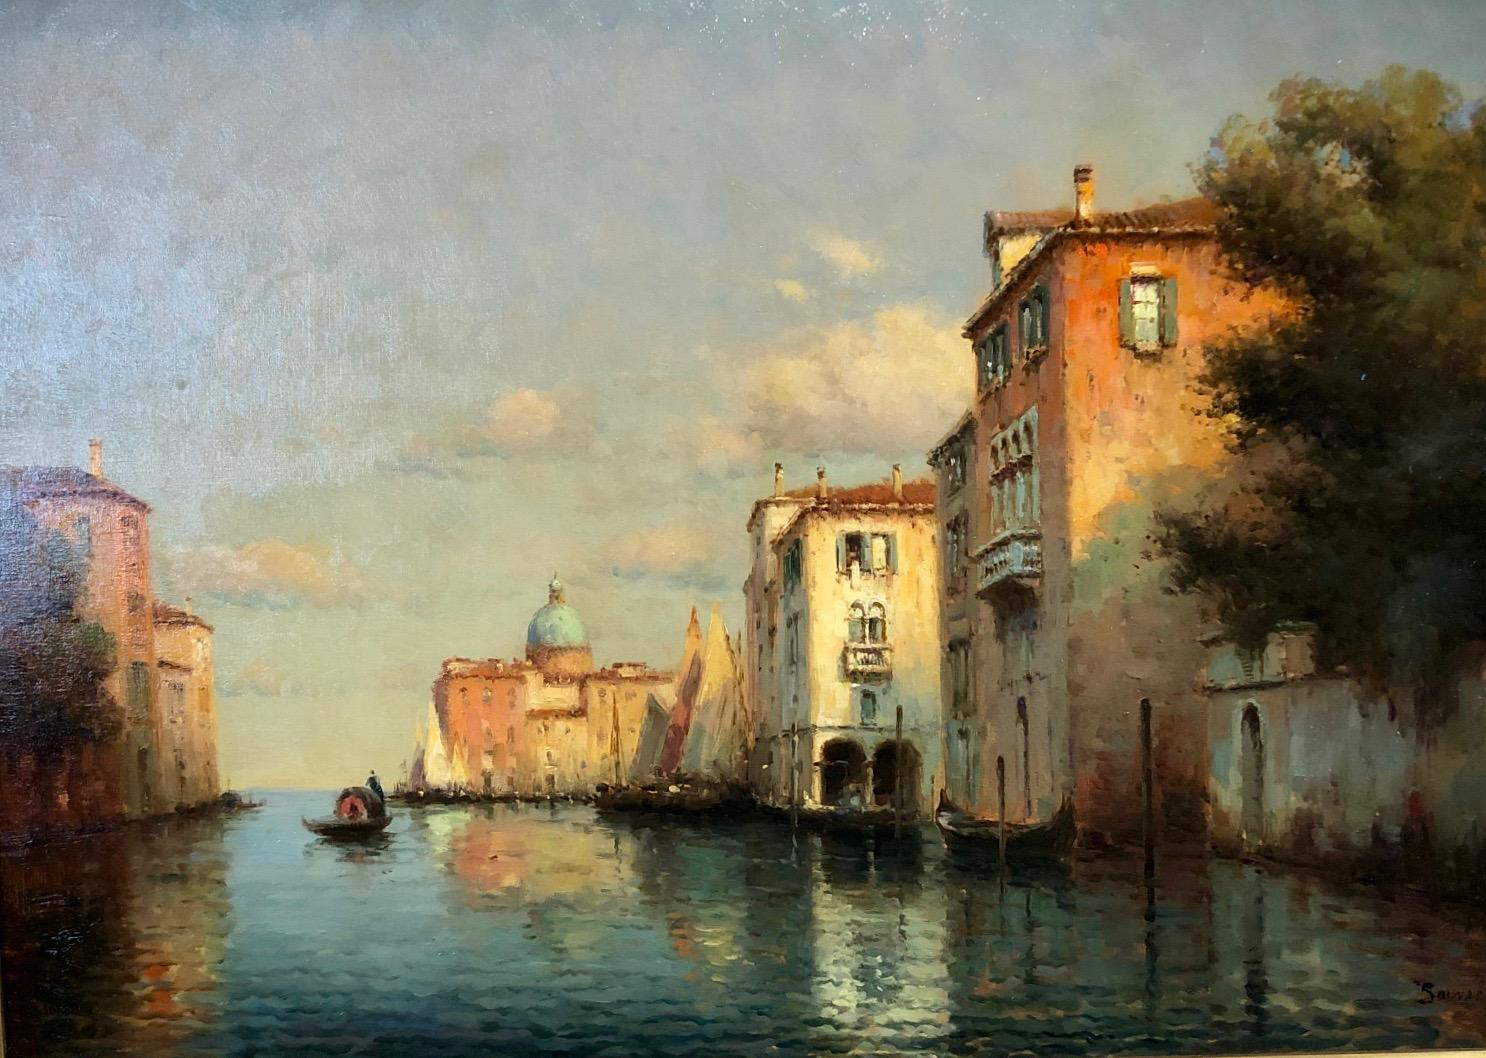 Venice, Evening - Oil on Canvas, Landscape Painting, Mid-20th Century, Bouvard